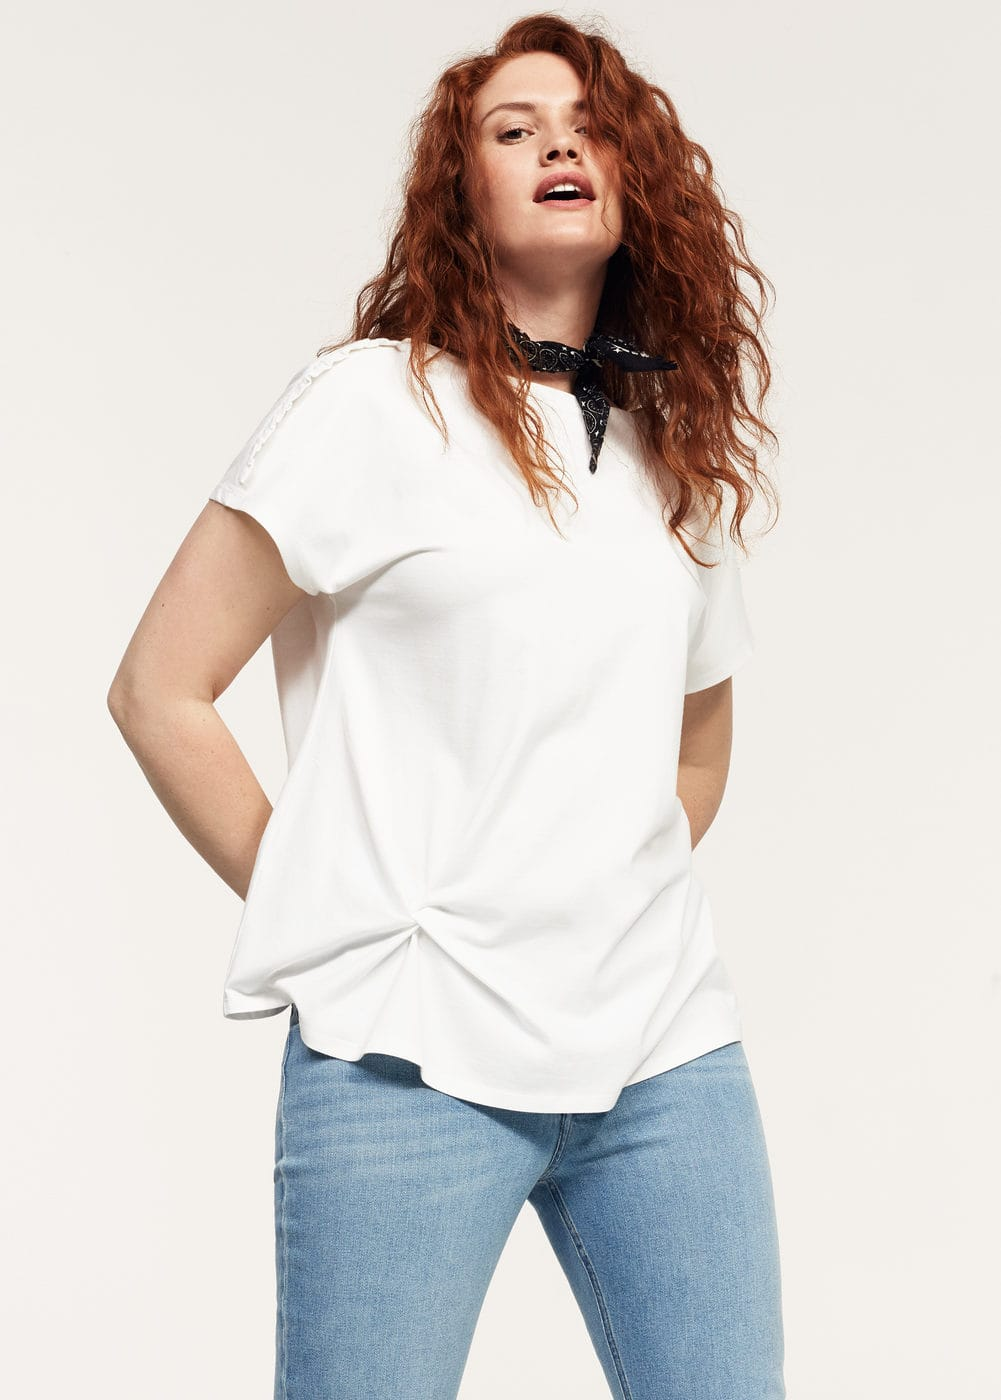 Ruched detail t-shirt | VIOLETA BY MNG